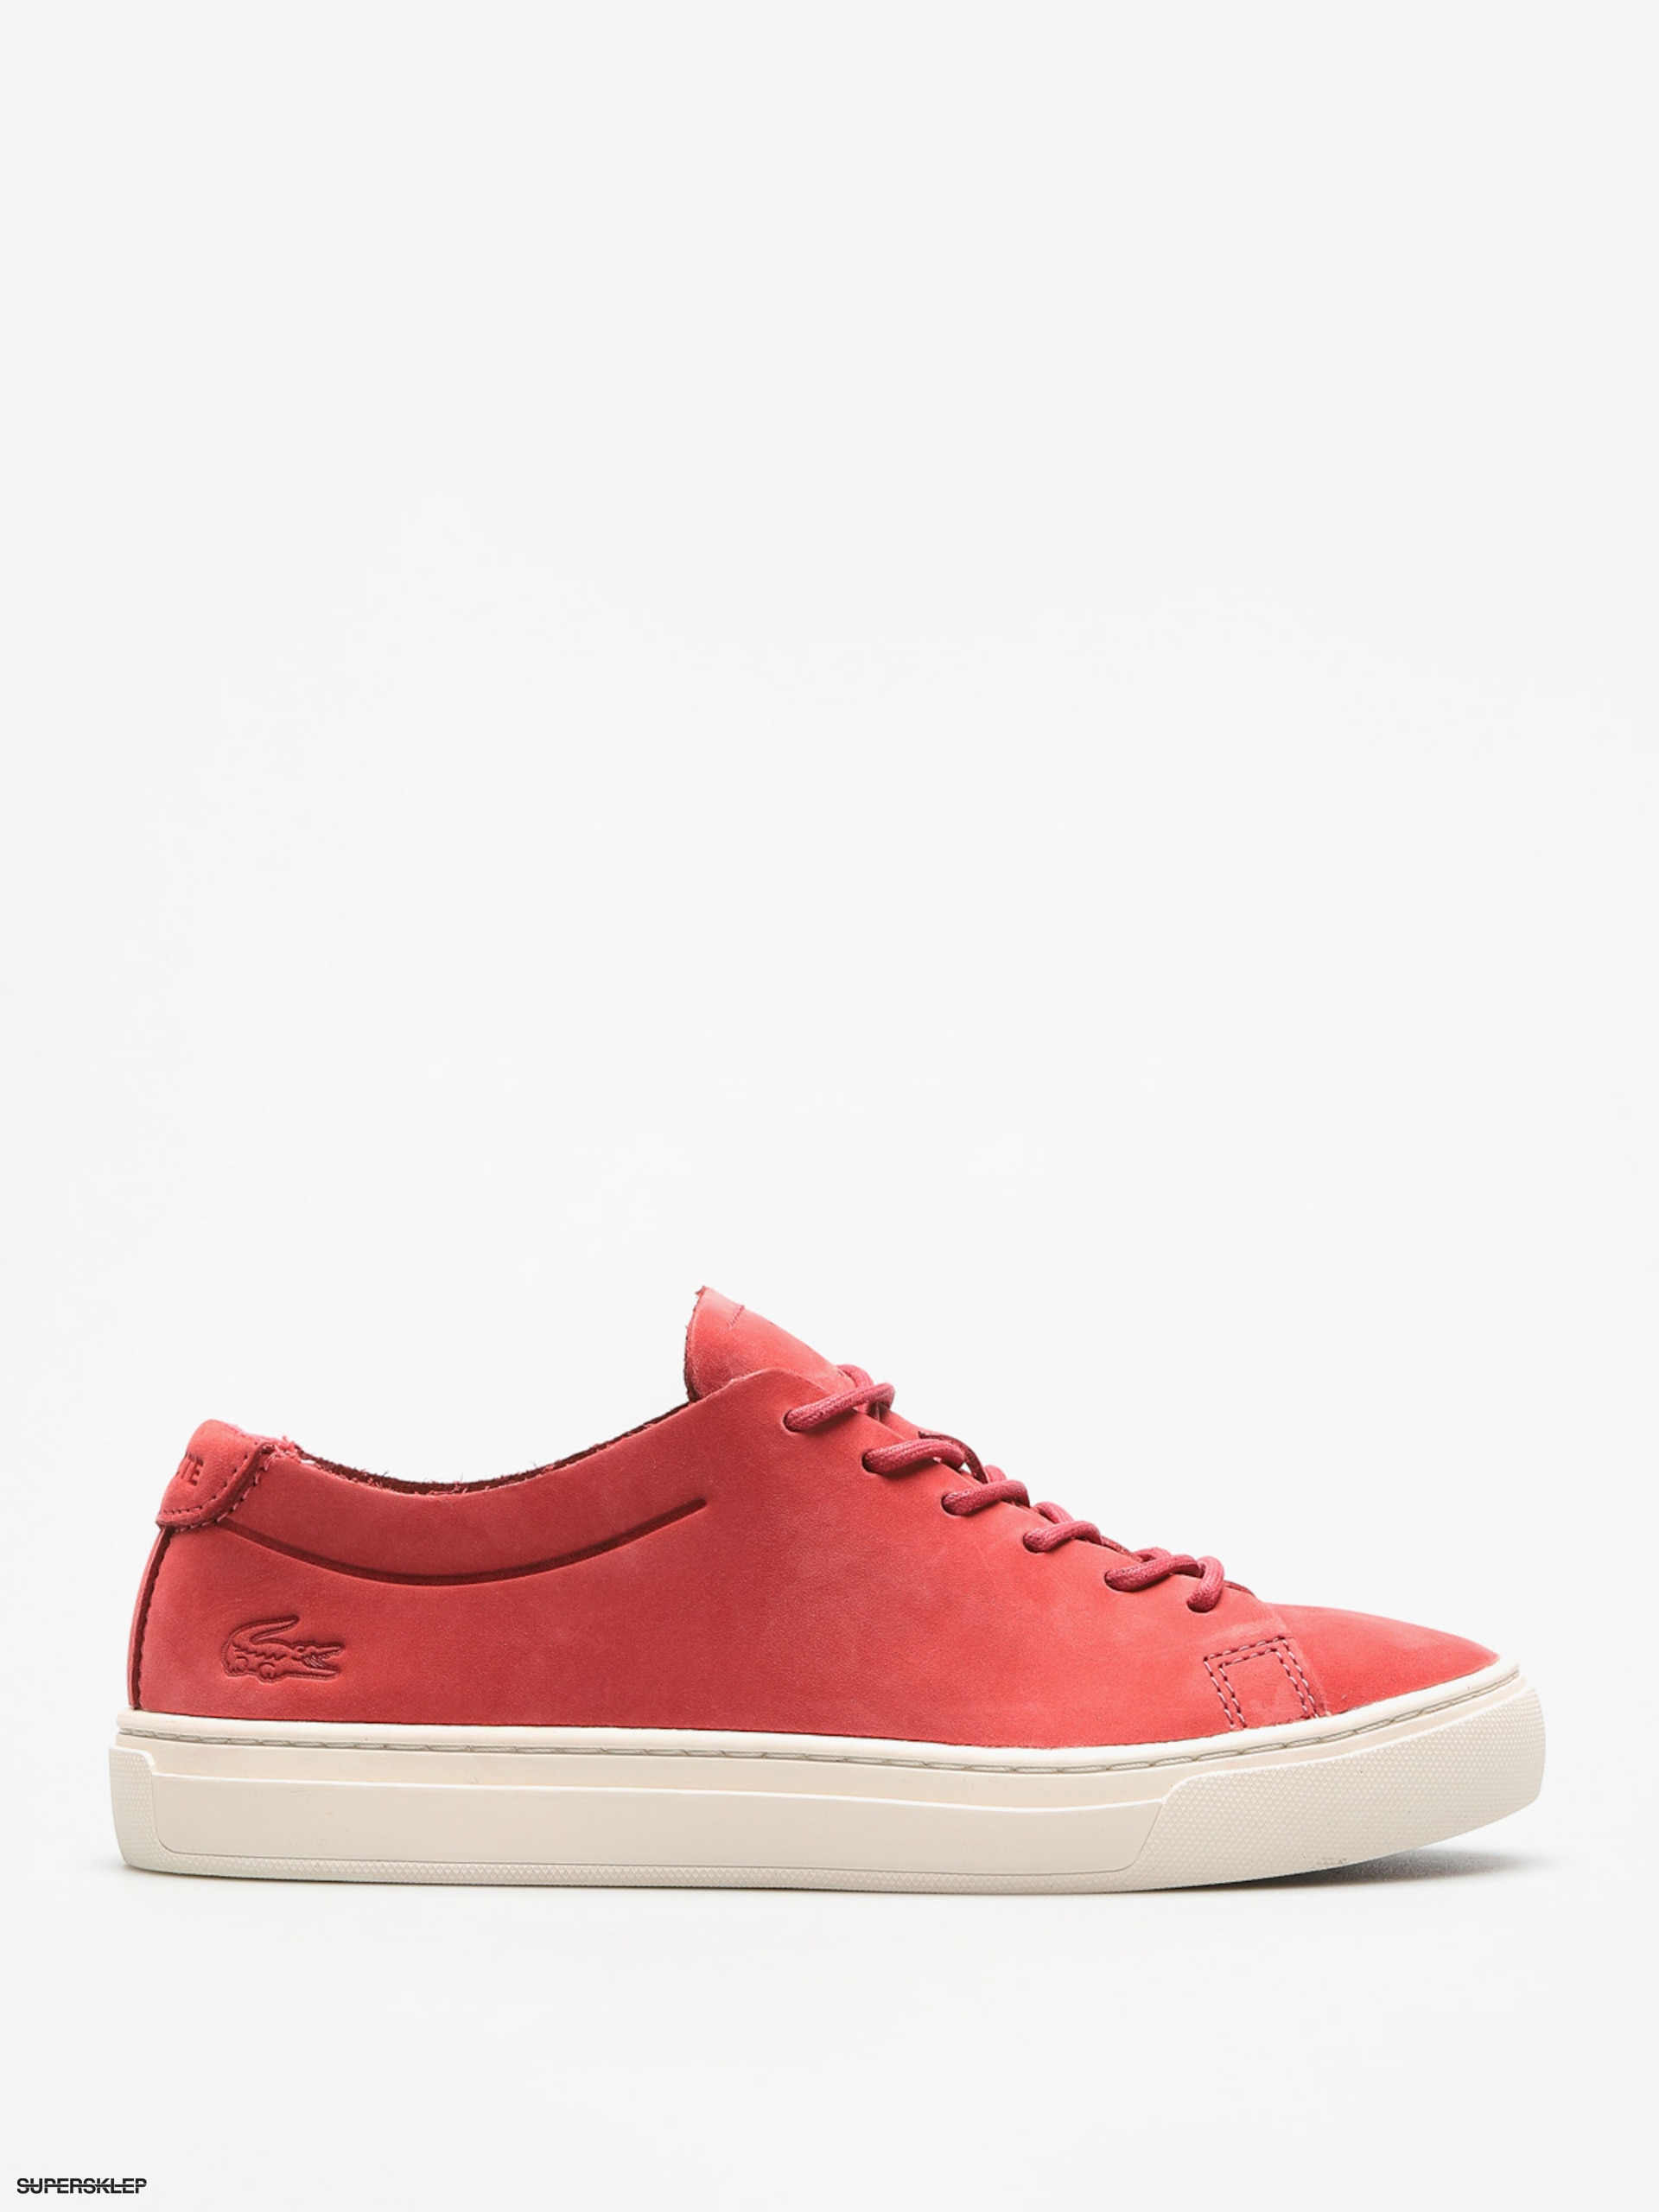 Topánky Lacoste L 12 12 Unlined 118 3 Wmn (red off white) 0986d541c58